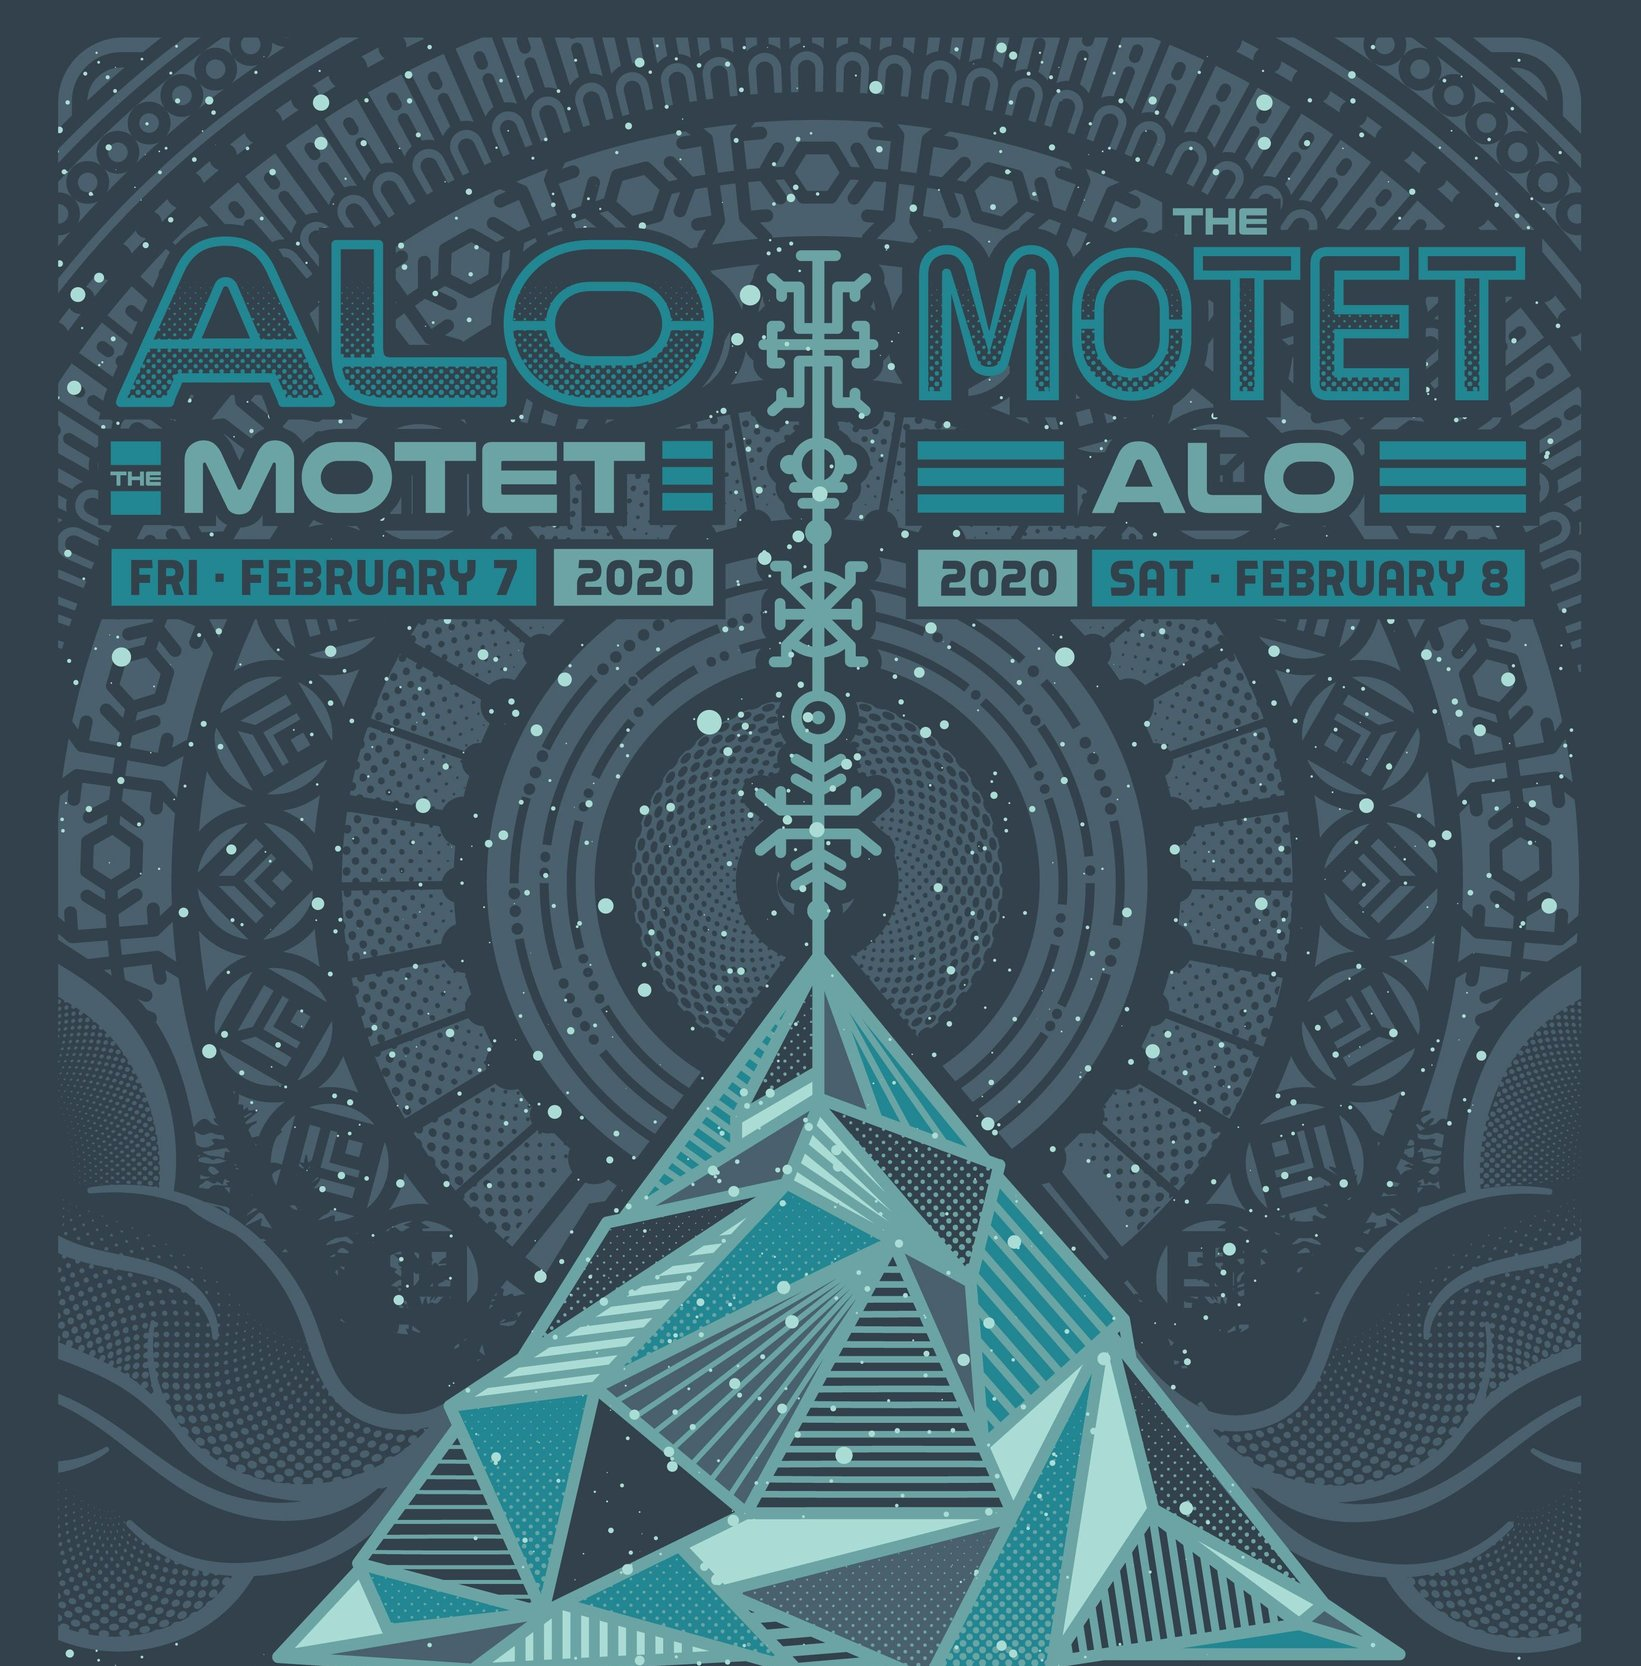 ALO And MOTET 2020